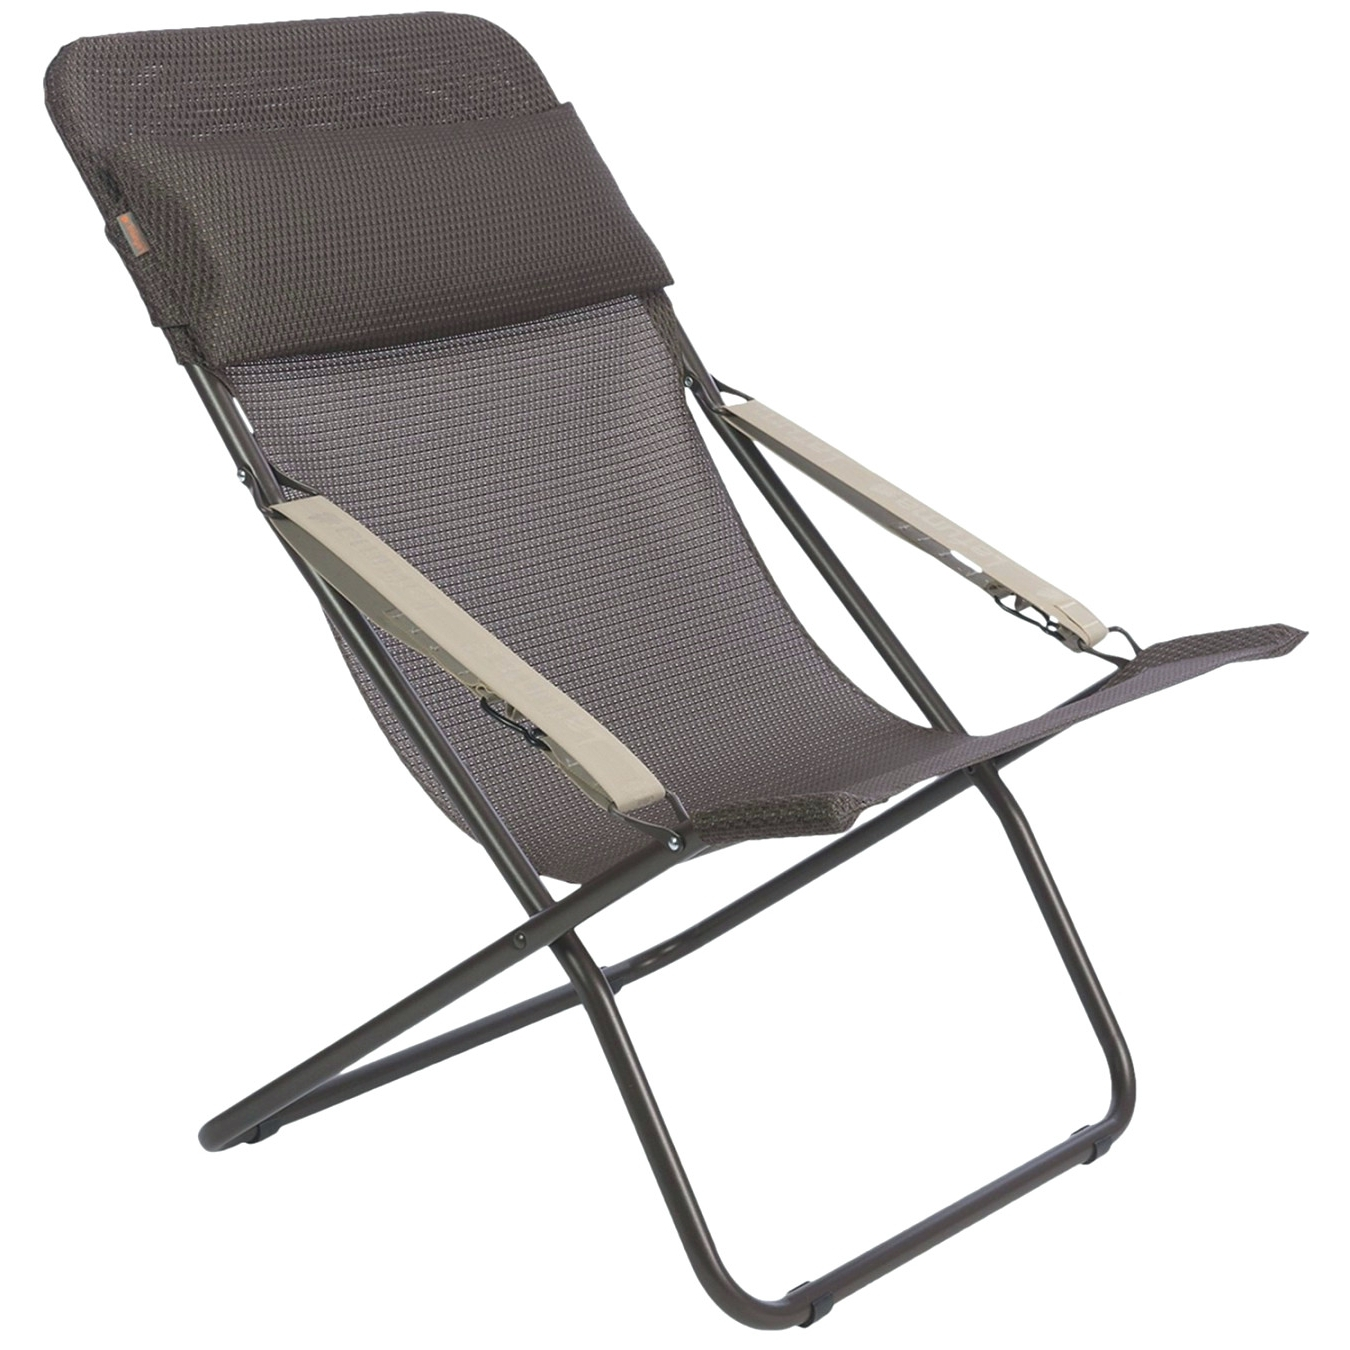 Portable Chair Folding Outdoor Chaise Lounge • Lounge Chairs Ideas With Regard To Widely Used Portable Outdoor Chaise Lounge Chairs (View 4 of 15)